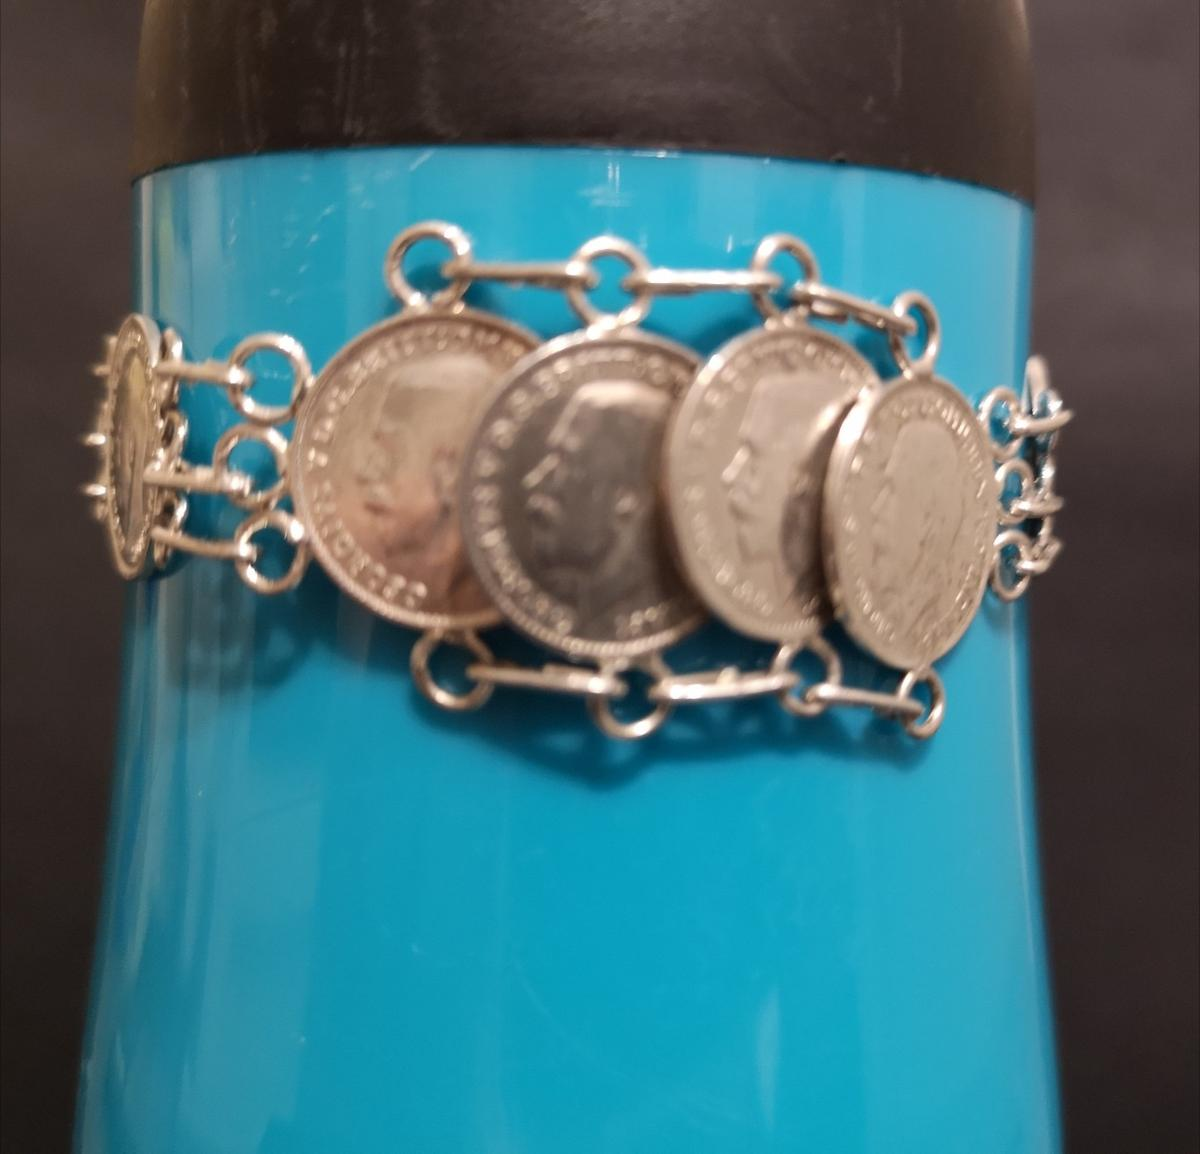 antique / vintage Sterling Silver Love Token Bracelet Beautiful antique/vintage hand made love token bracelet made from genuine antique solid sterling silver 3d(pence) coins Bracelet and All coins date from between 1911 and 1919 and all bar links and rings are sterling silver bracelet has heavy strong sterling silver Albert clasp and safety chain Bracelet is in fantastic condition, item measures 7.5 inches in length and weighs 22.59grms Please see pictures £65 O. B. O